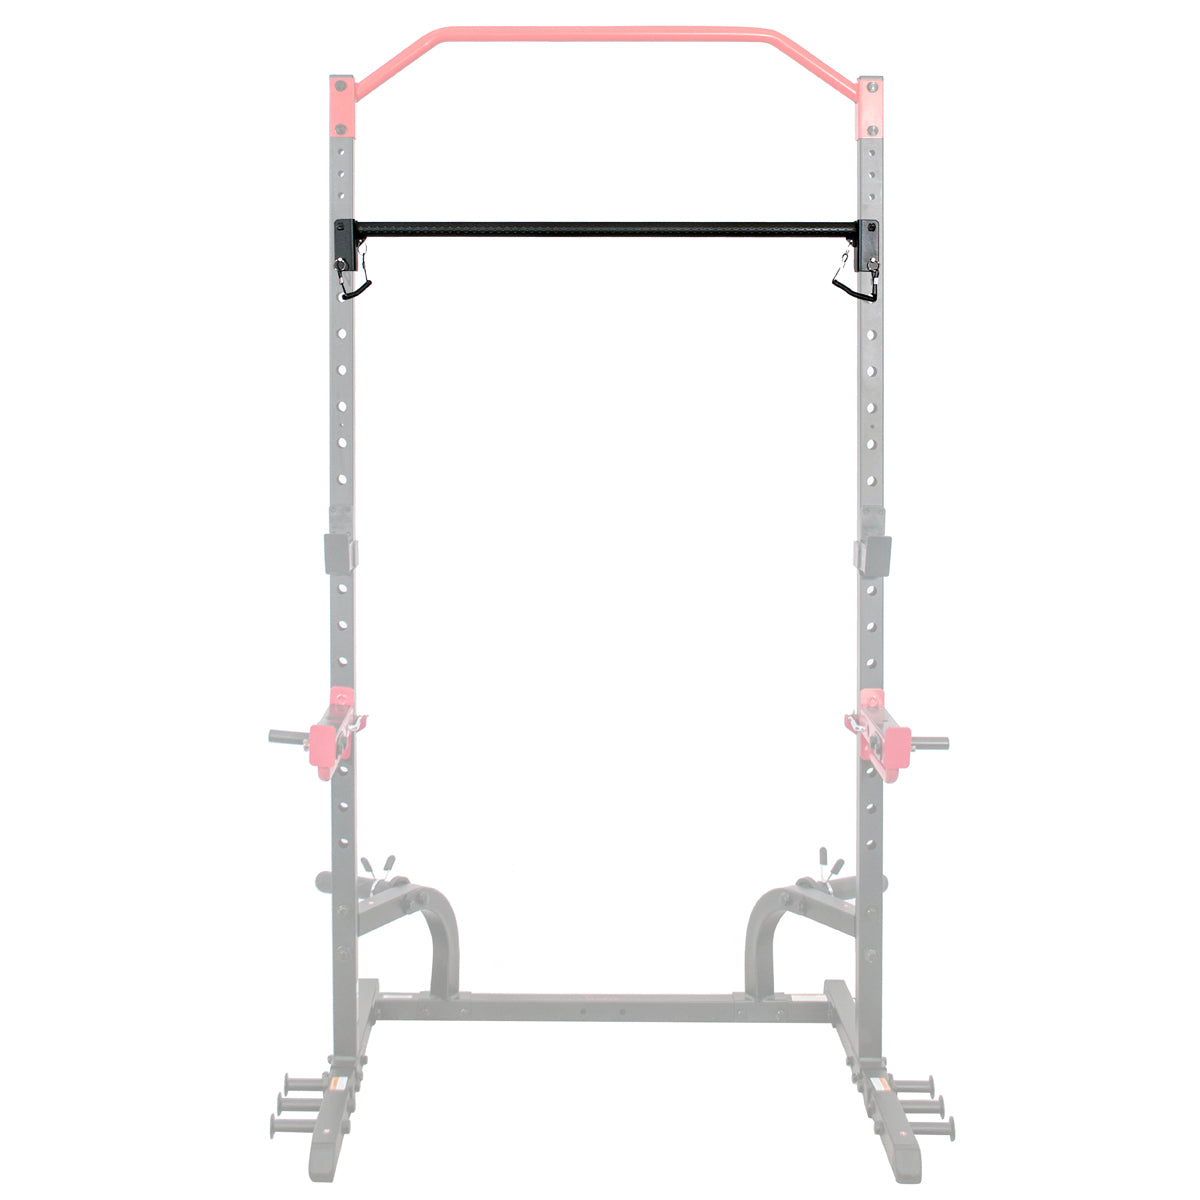 sunny-health-fitness-strength-pull-up-bar-attachment-SF-XFA001-Standard-Fit